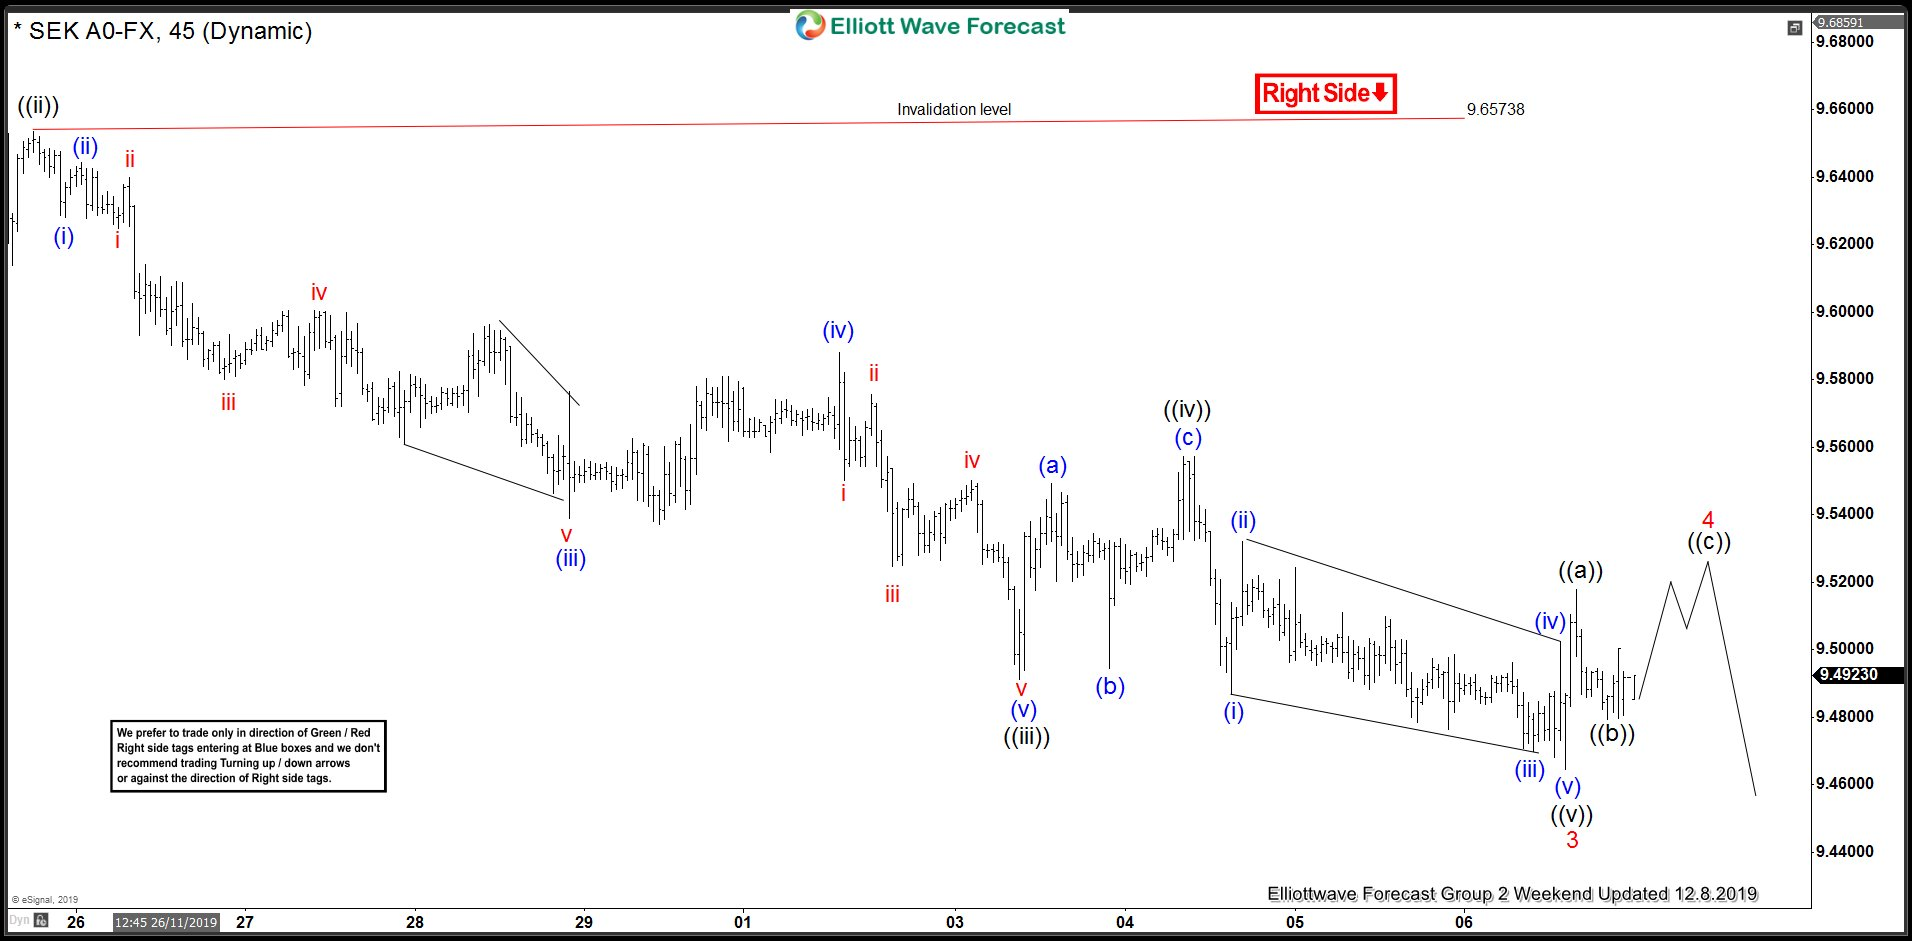 USDSEK Forecasting The Decline using Elliott Wave